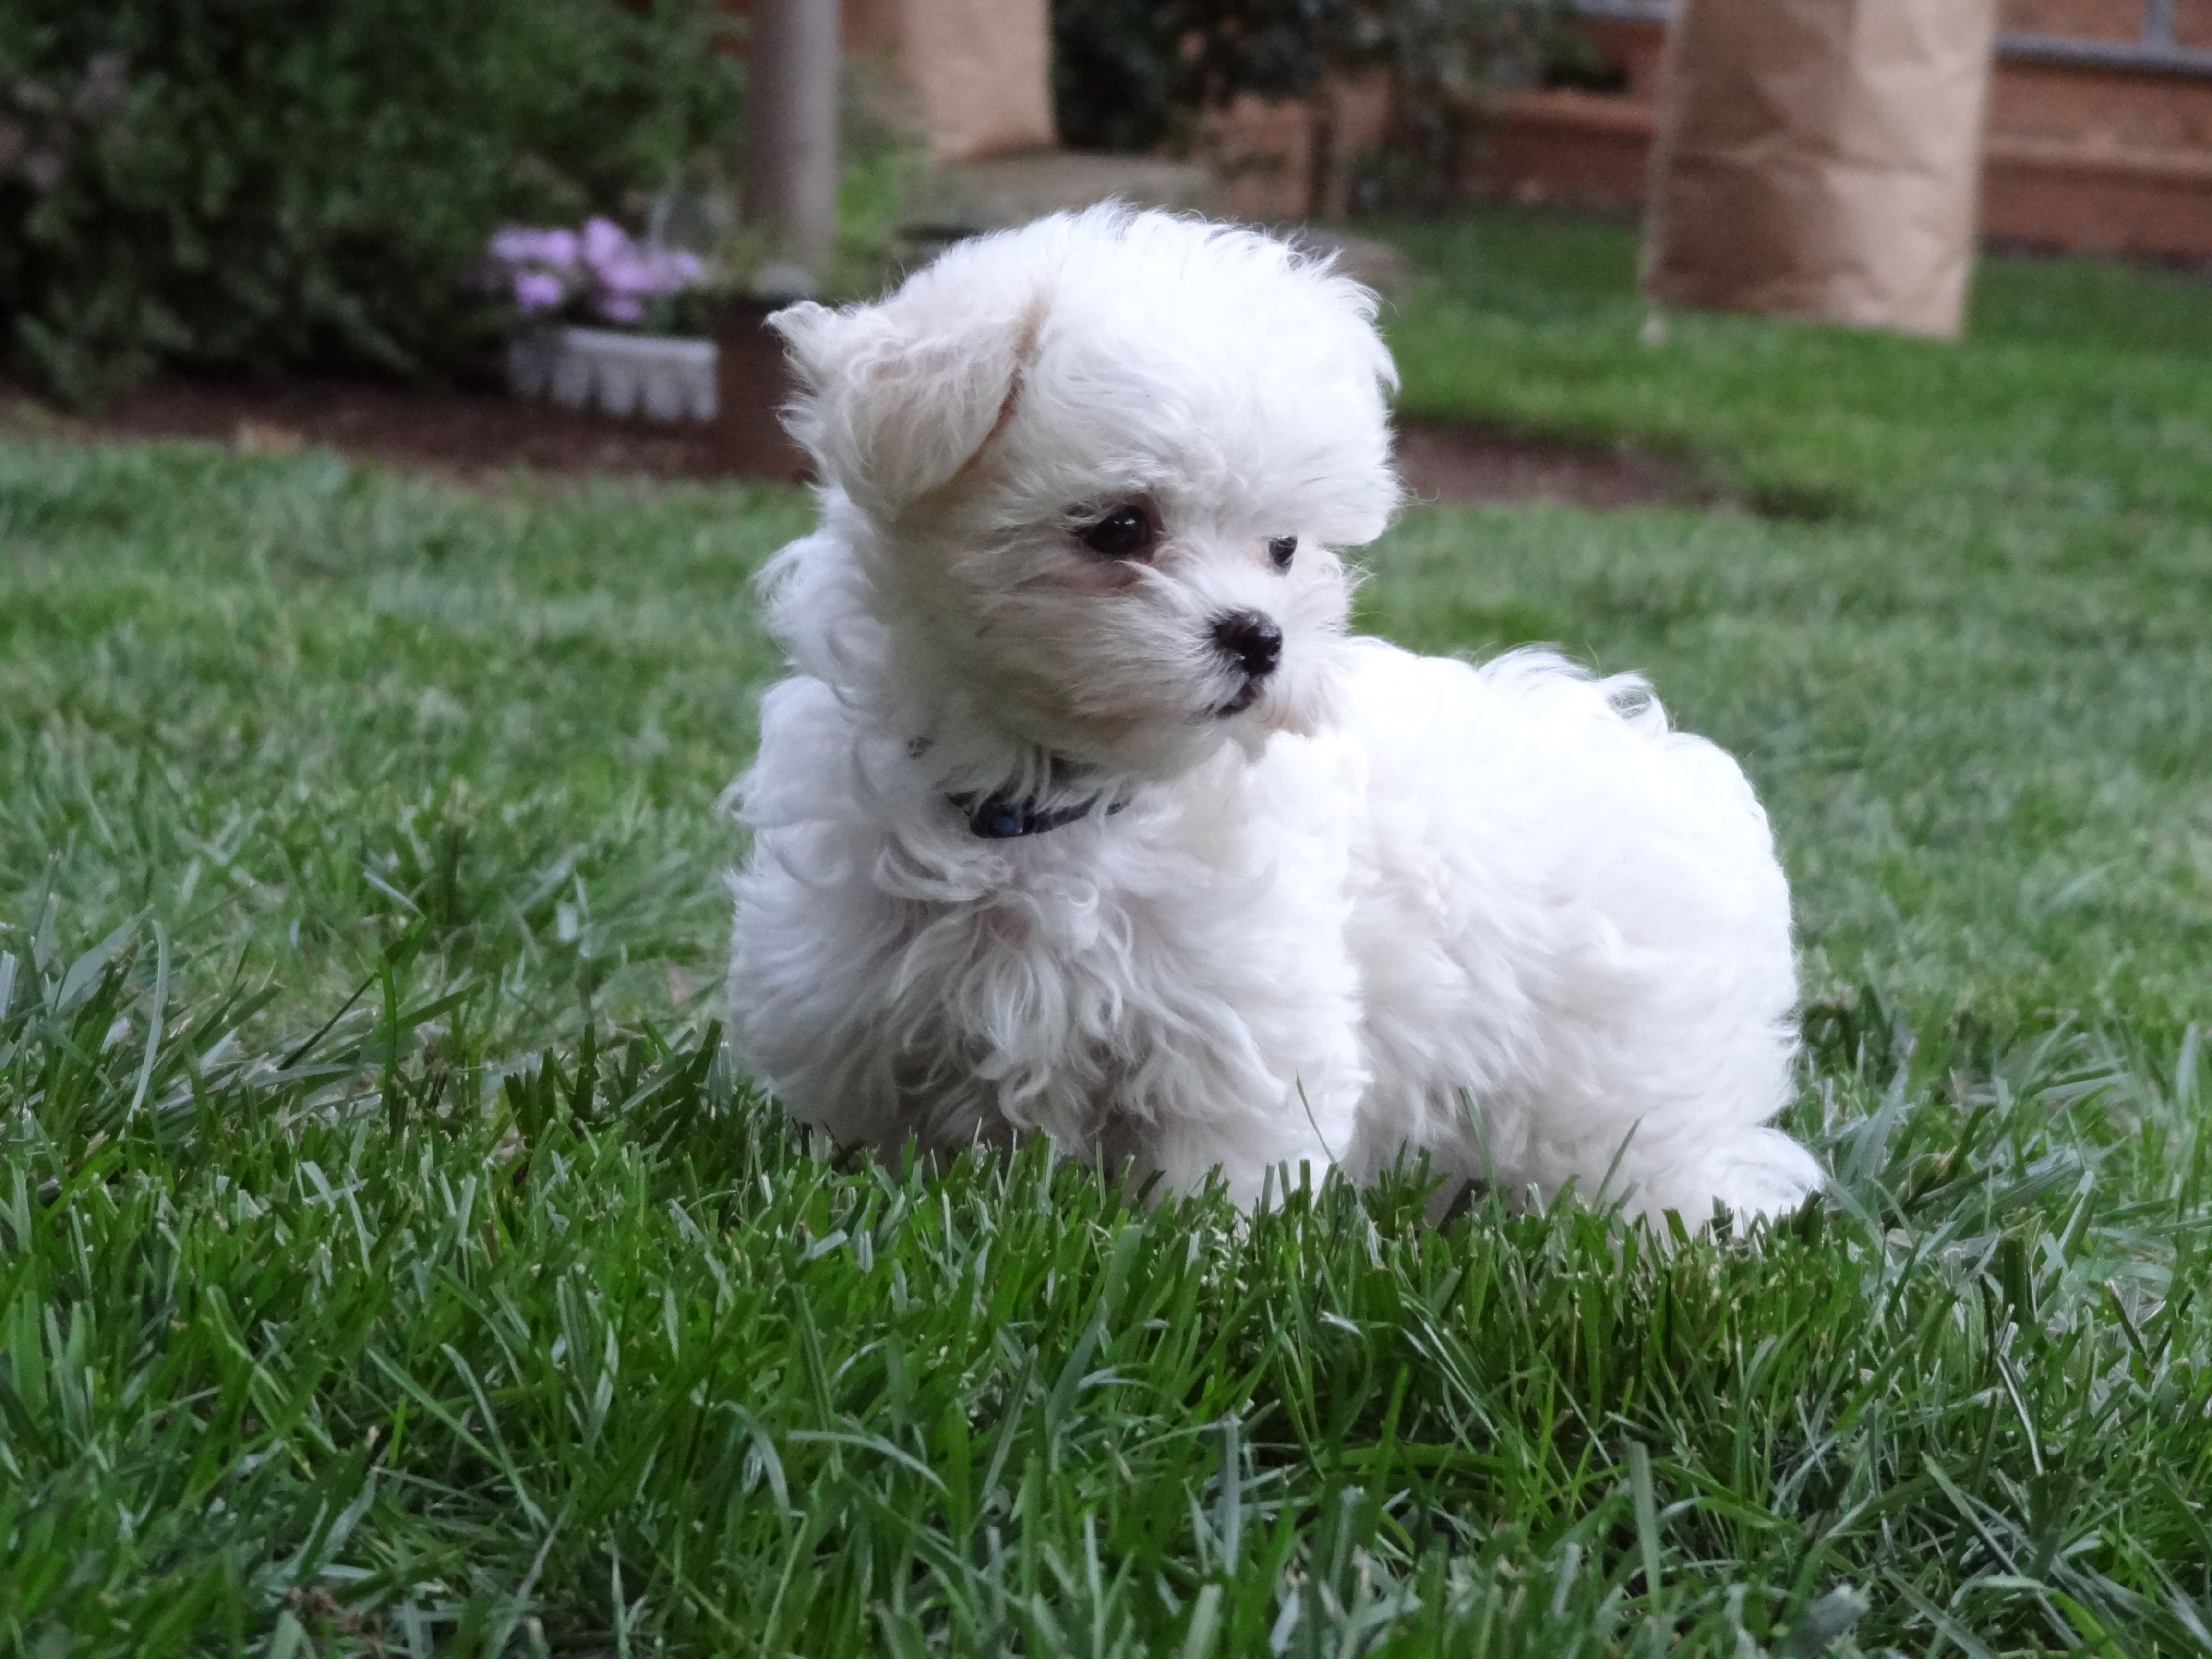 7 Weeks Old Maltese Puppy Maltese Dogs Maltese Puppy Dogs And